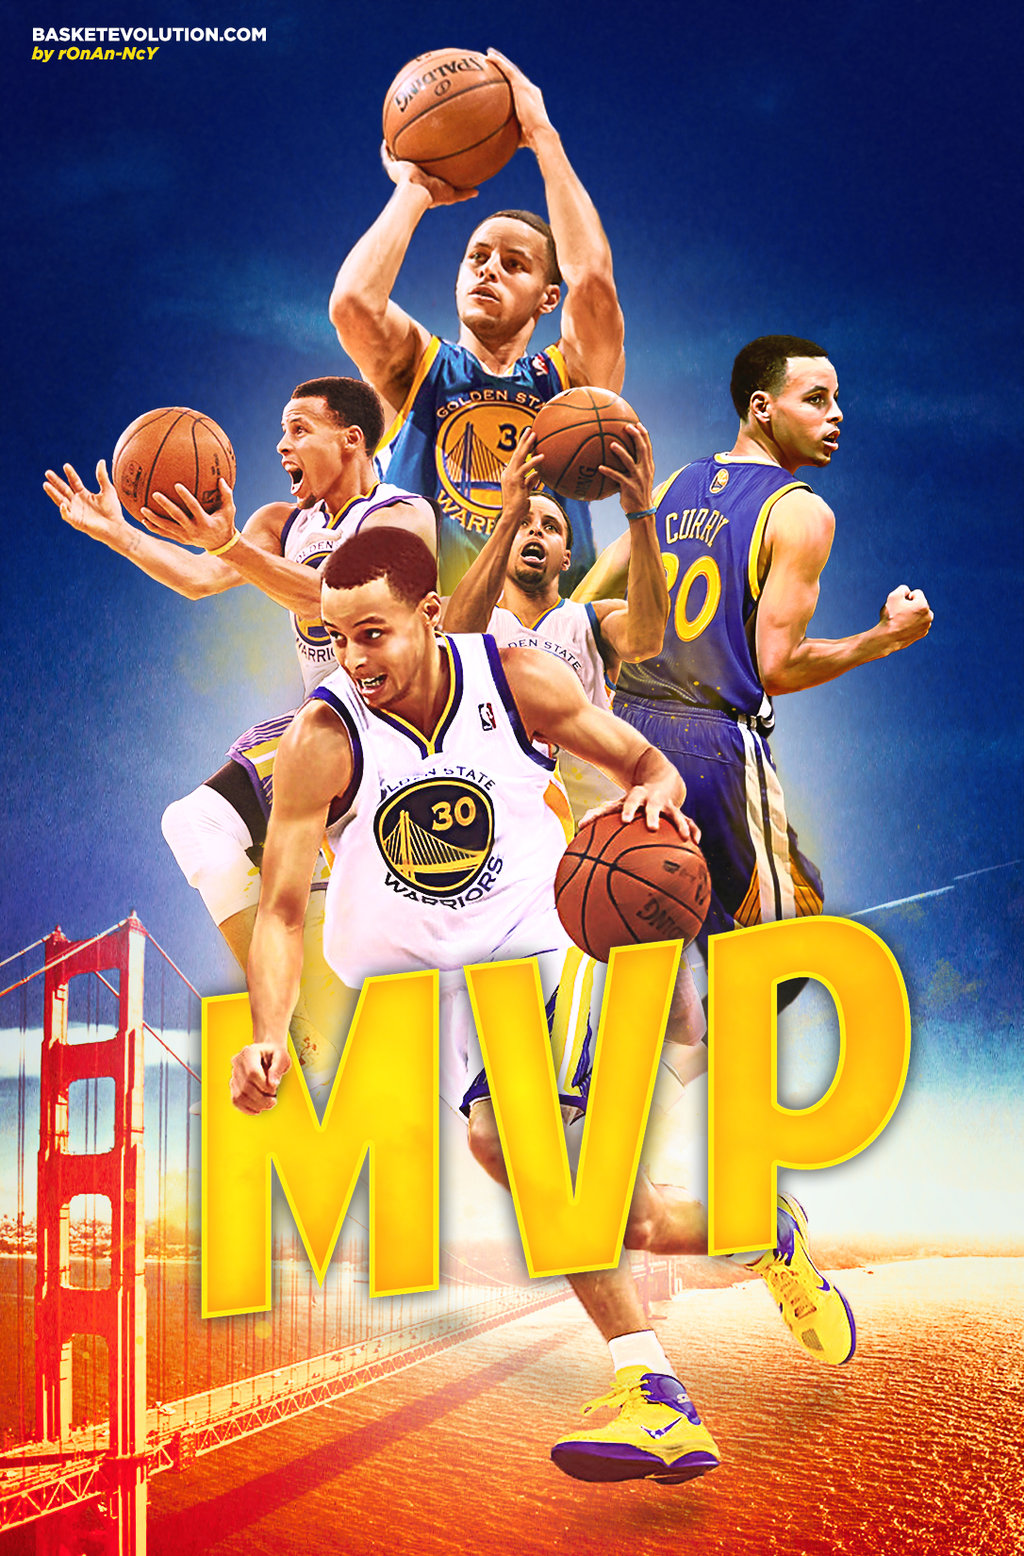 Animated Nba Wallpapers Stephen Curry Iphone Desktop Backgrounds Wallpaper